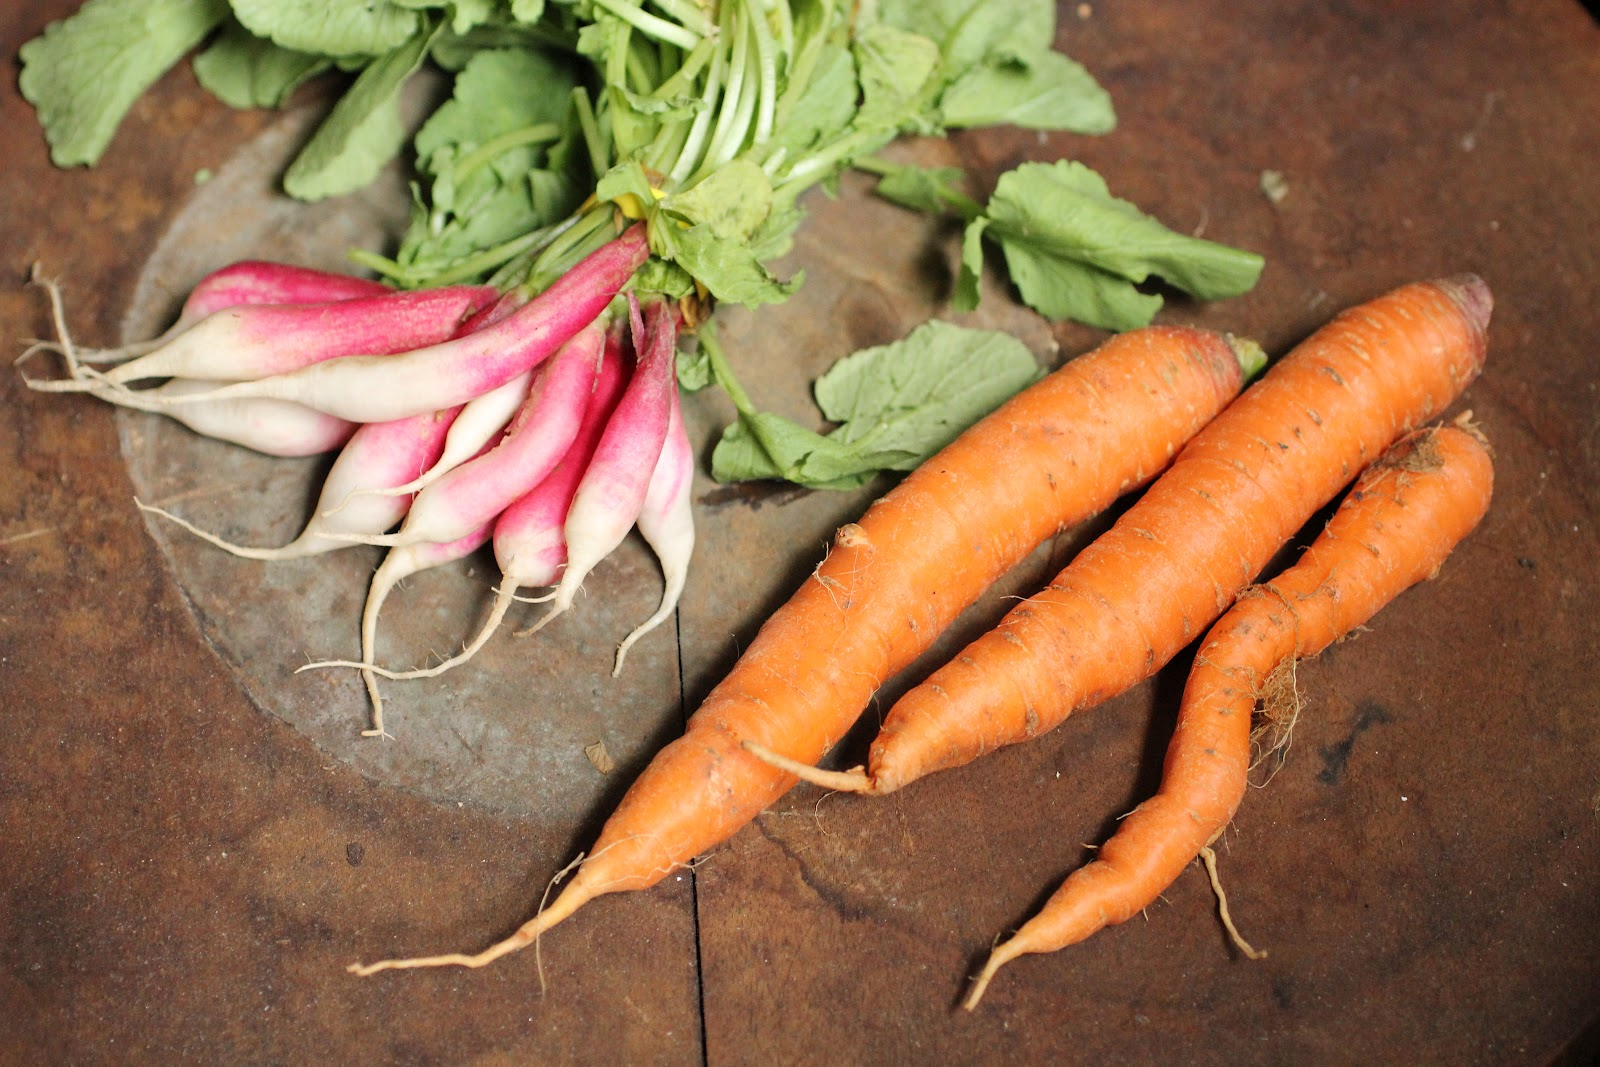 French radish and carrots